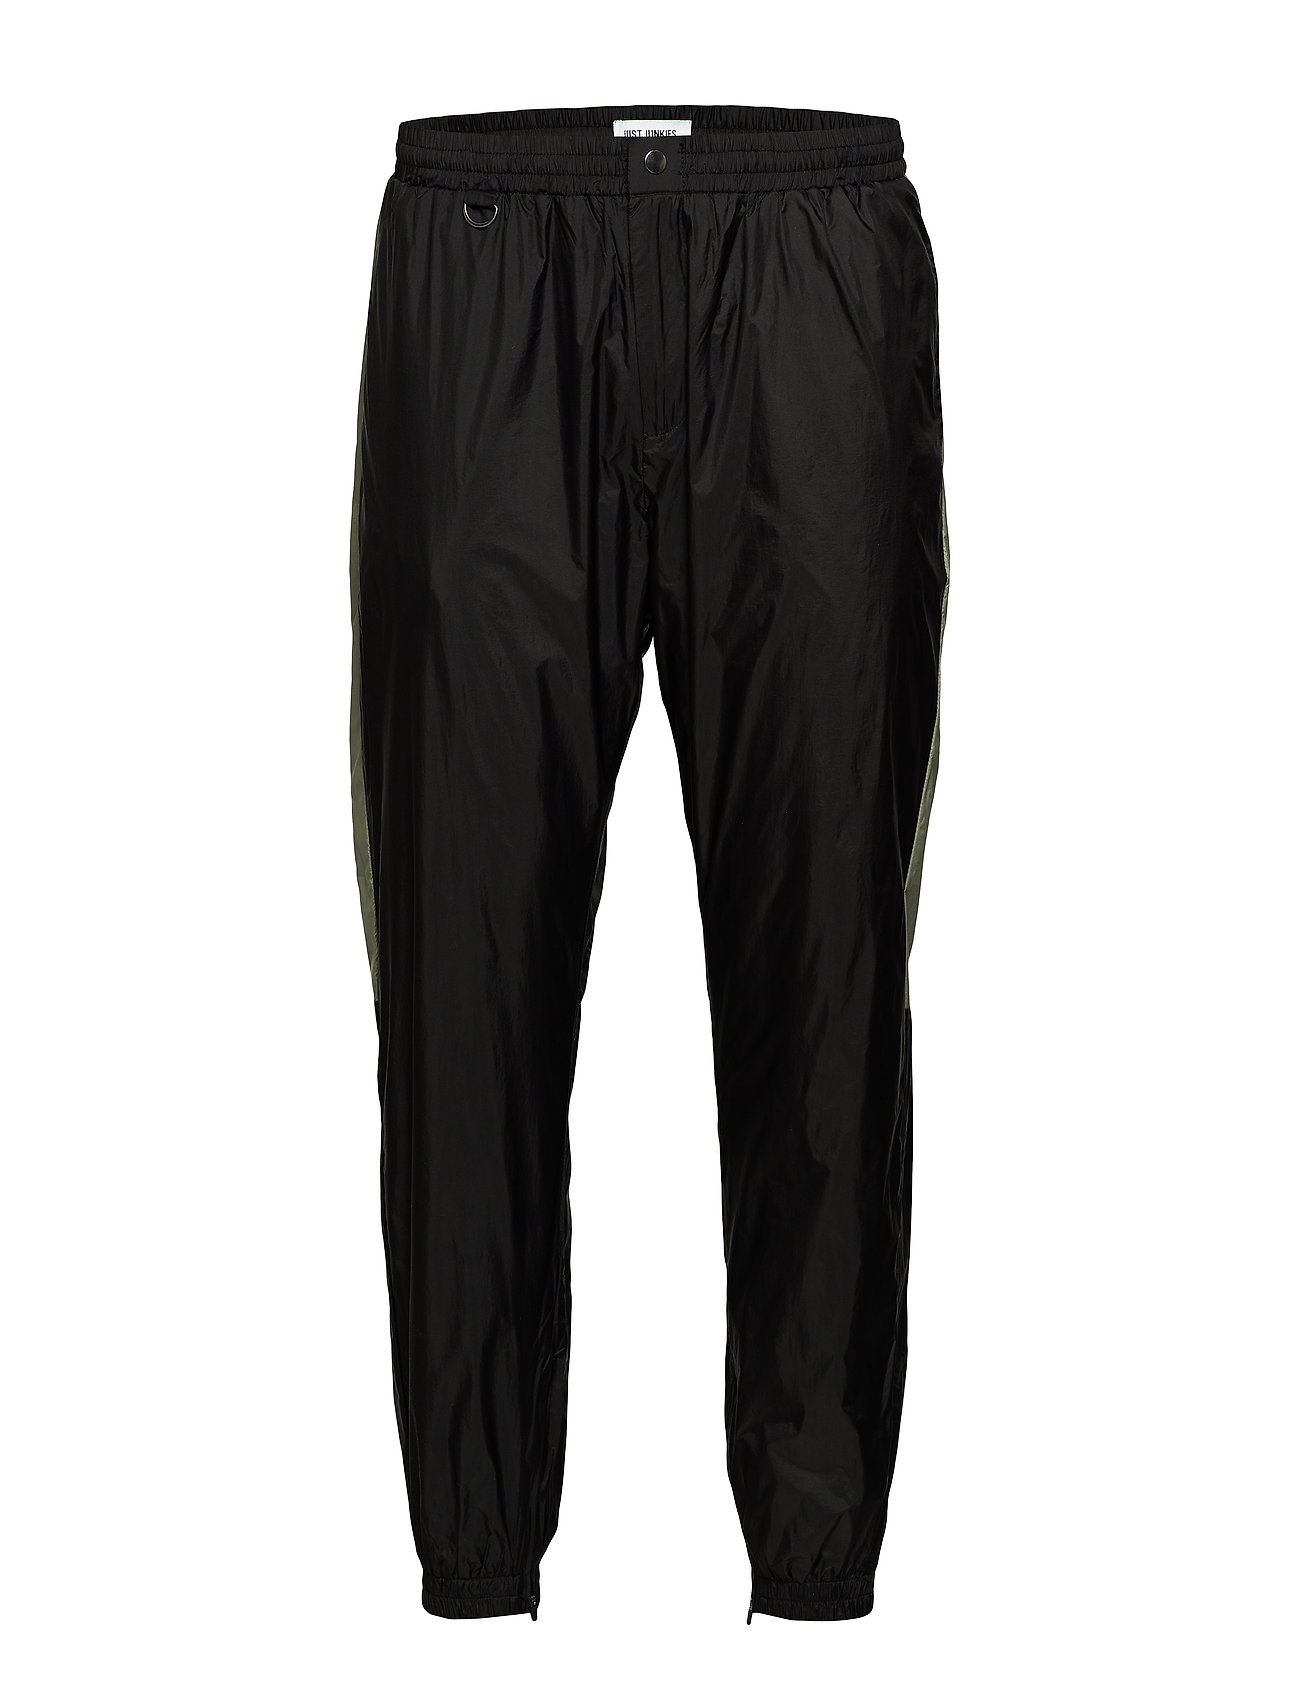 Just Junkies Kyoto Pants - BLACK